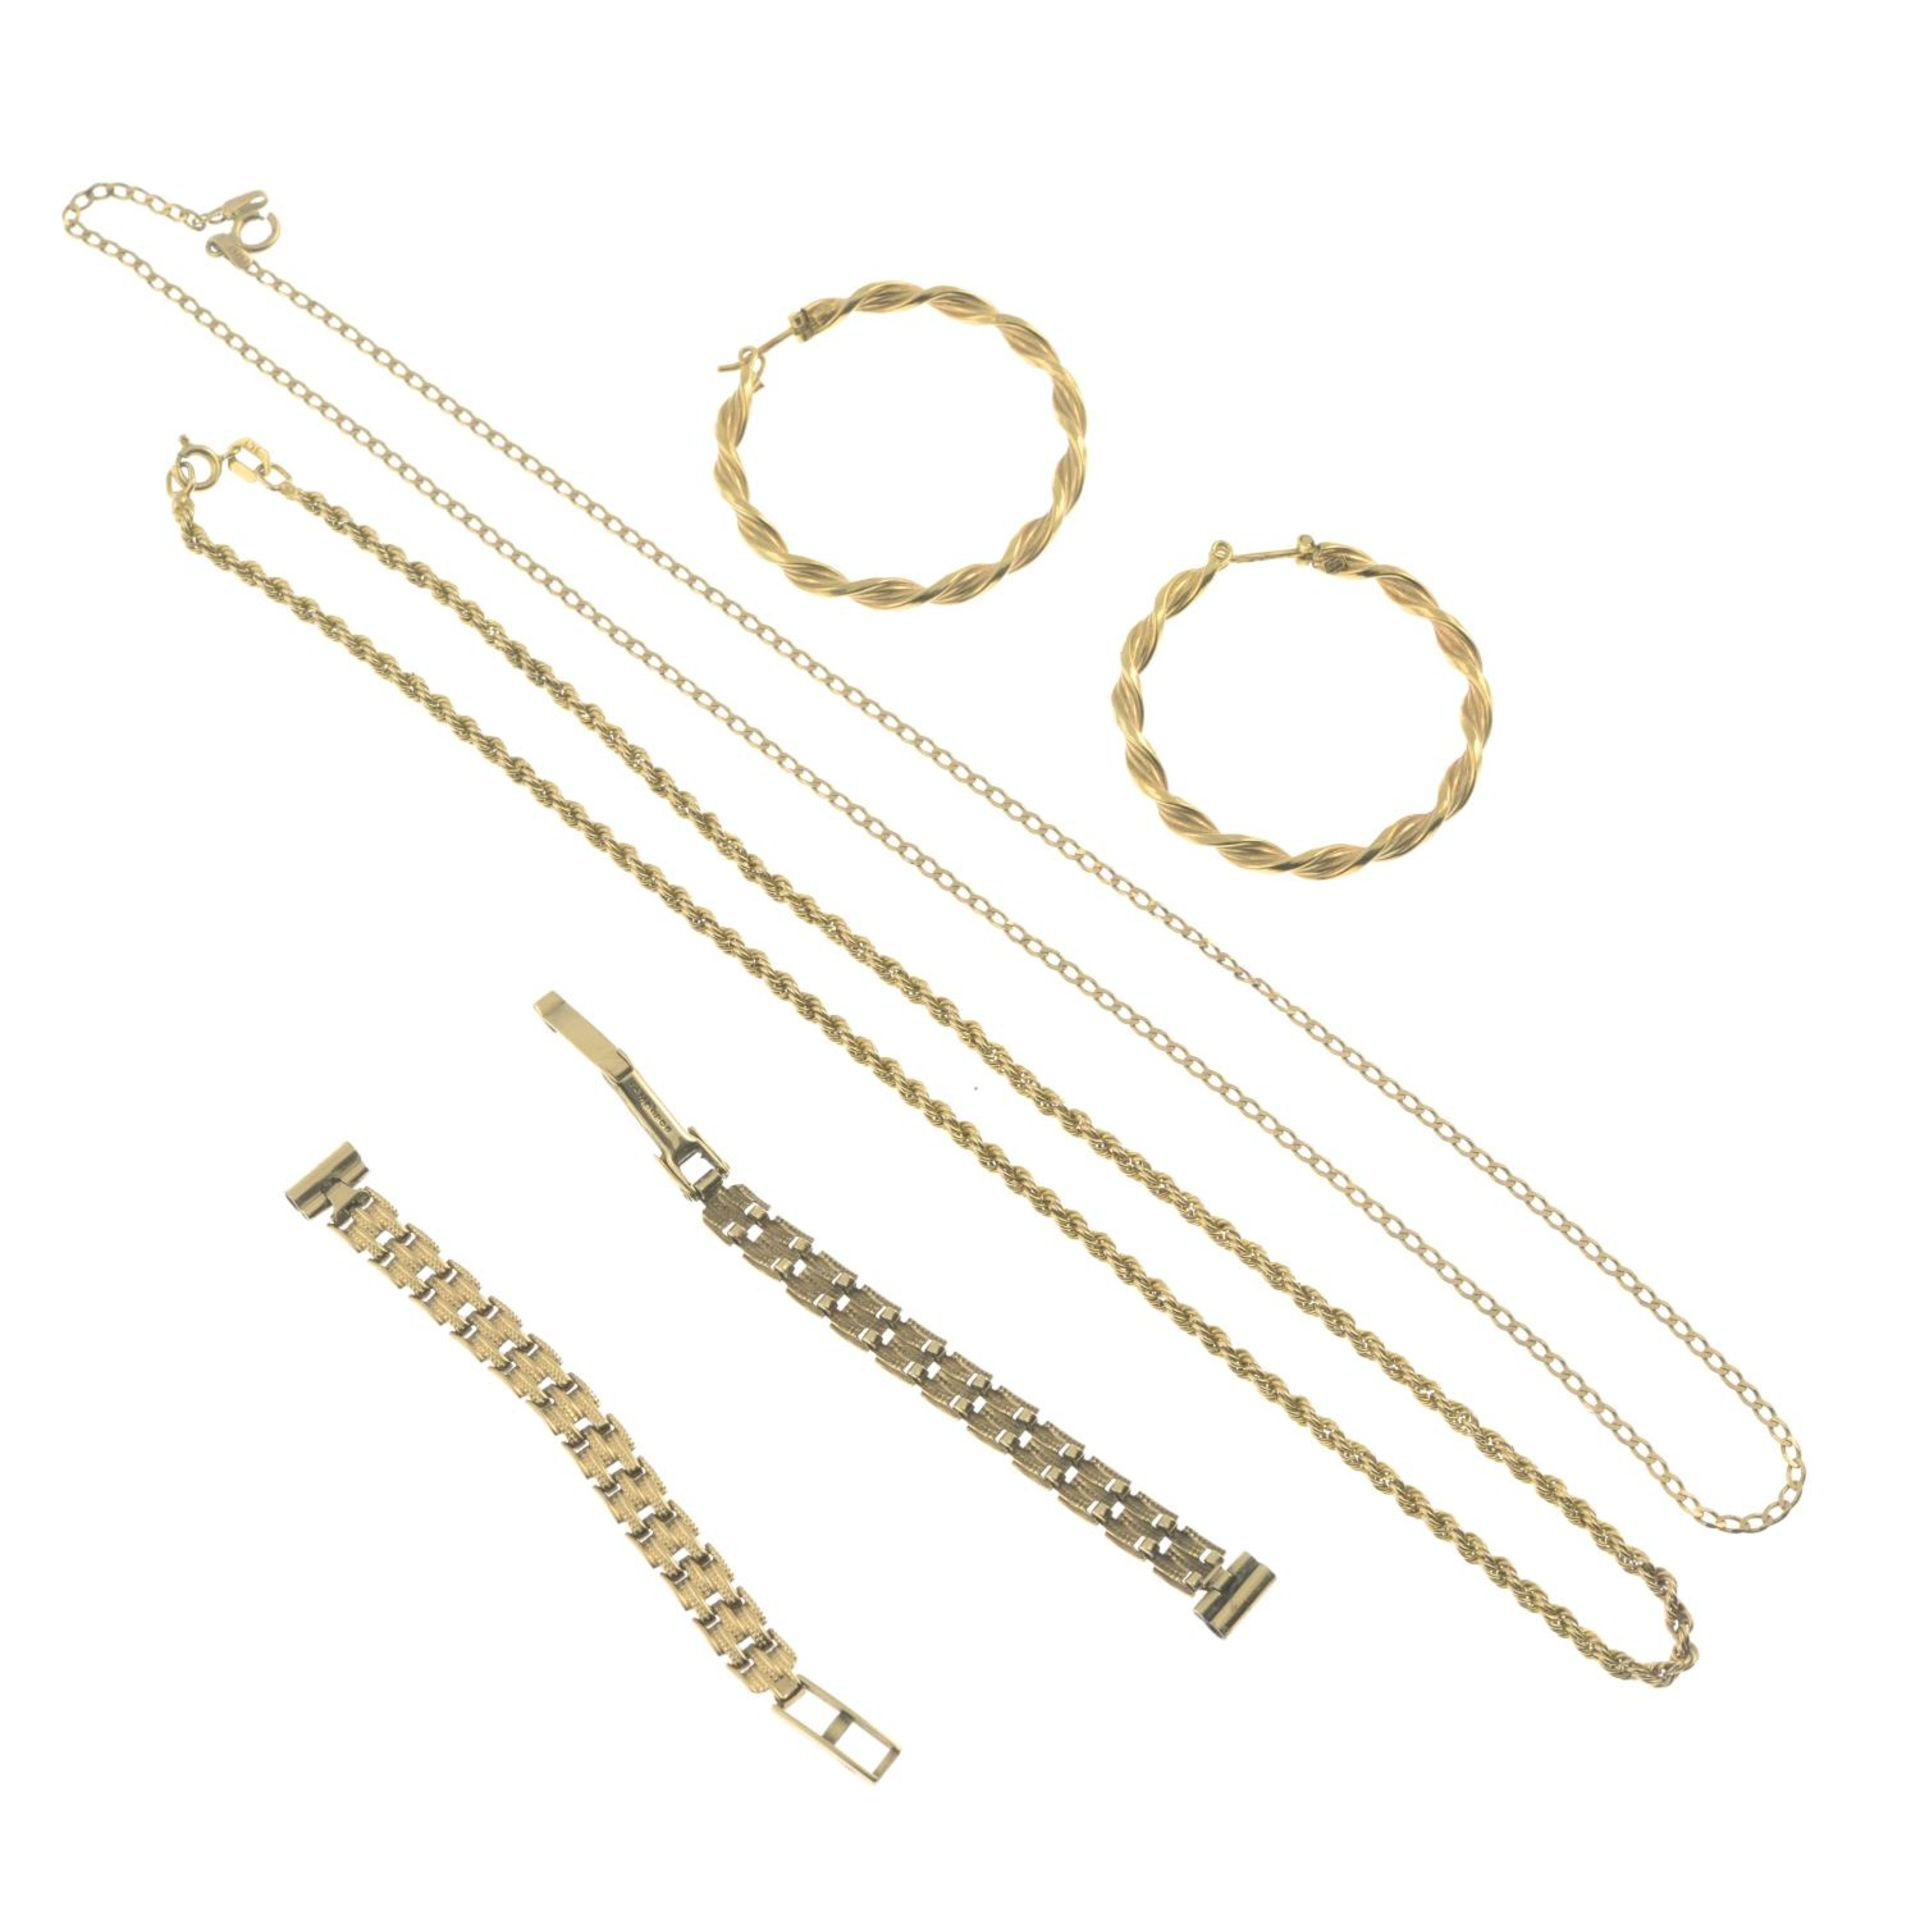 Four items of 9ct gold jewellery, - Image 2 of 2